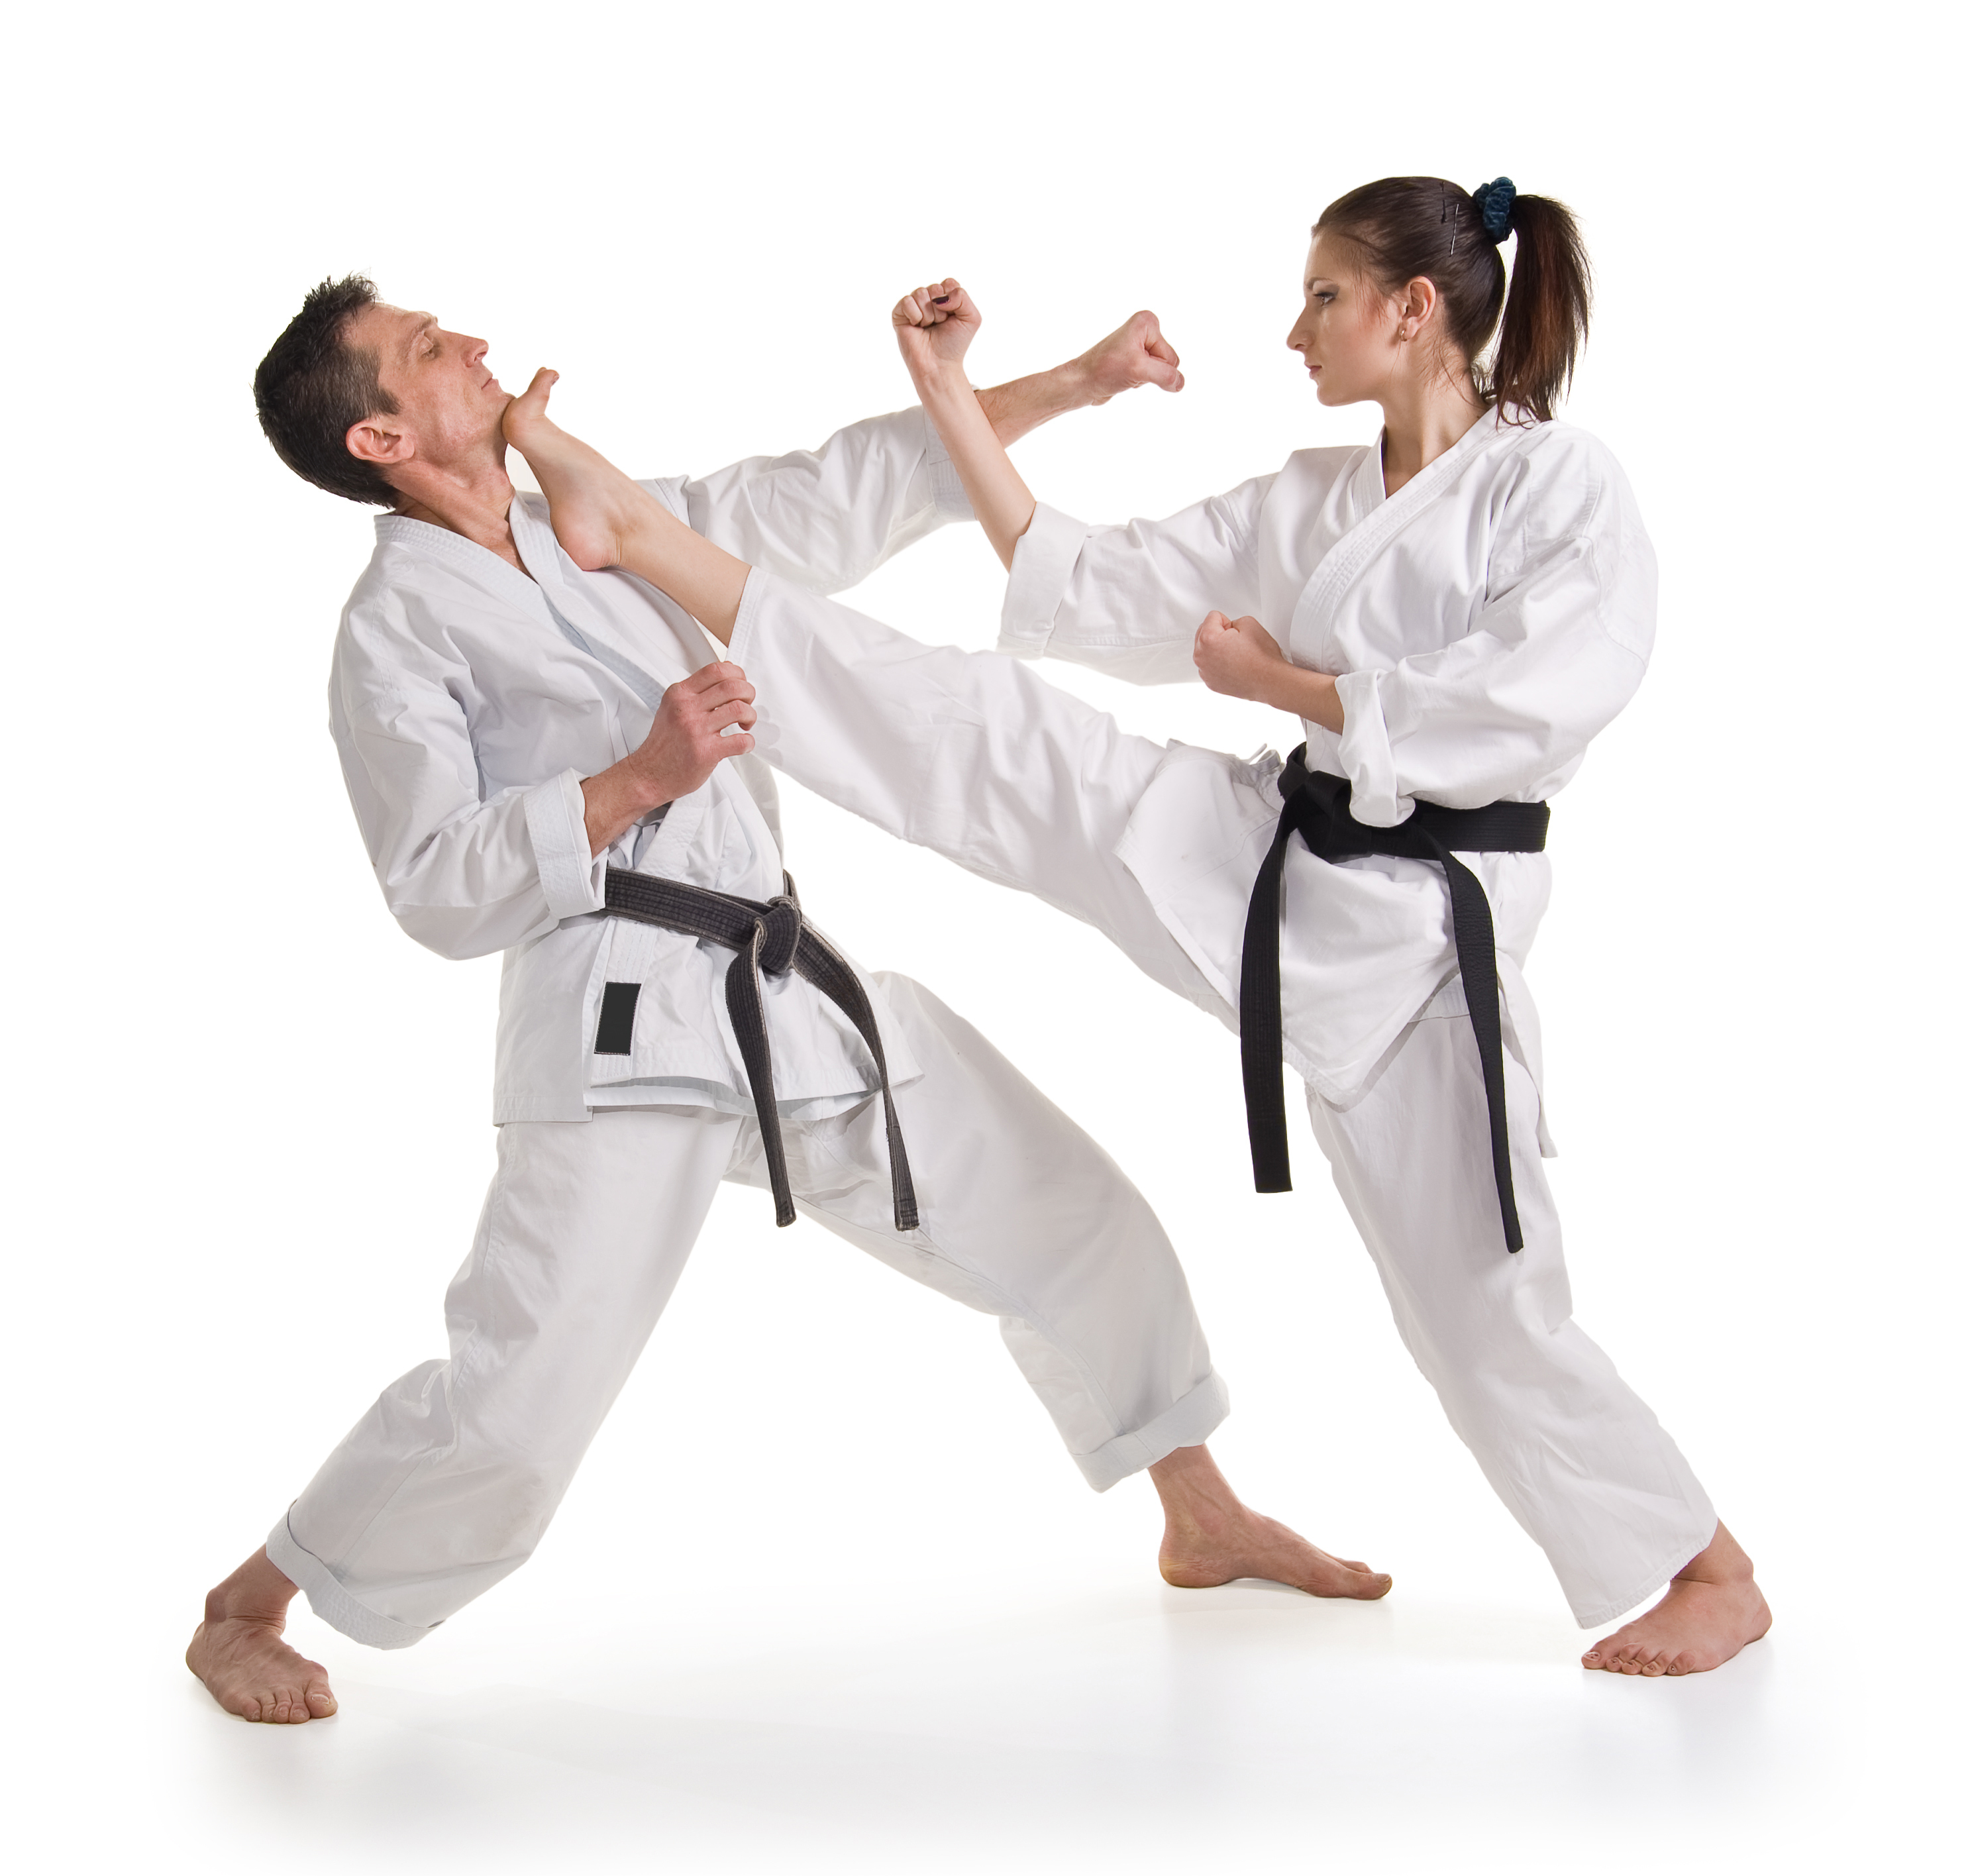 Martial Arts clipart famous person Martial – For Karate Quick